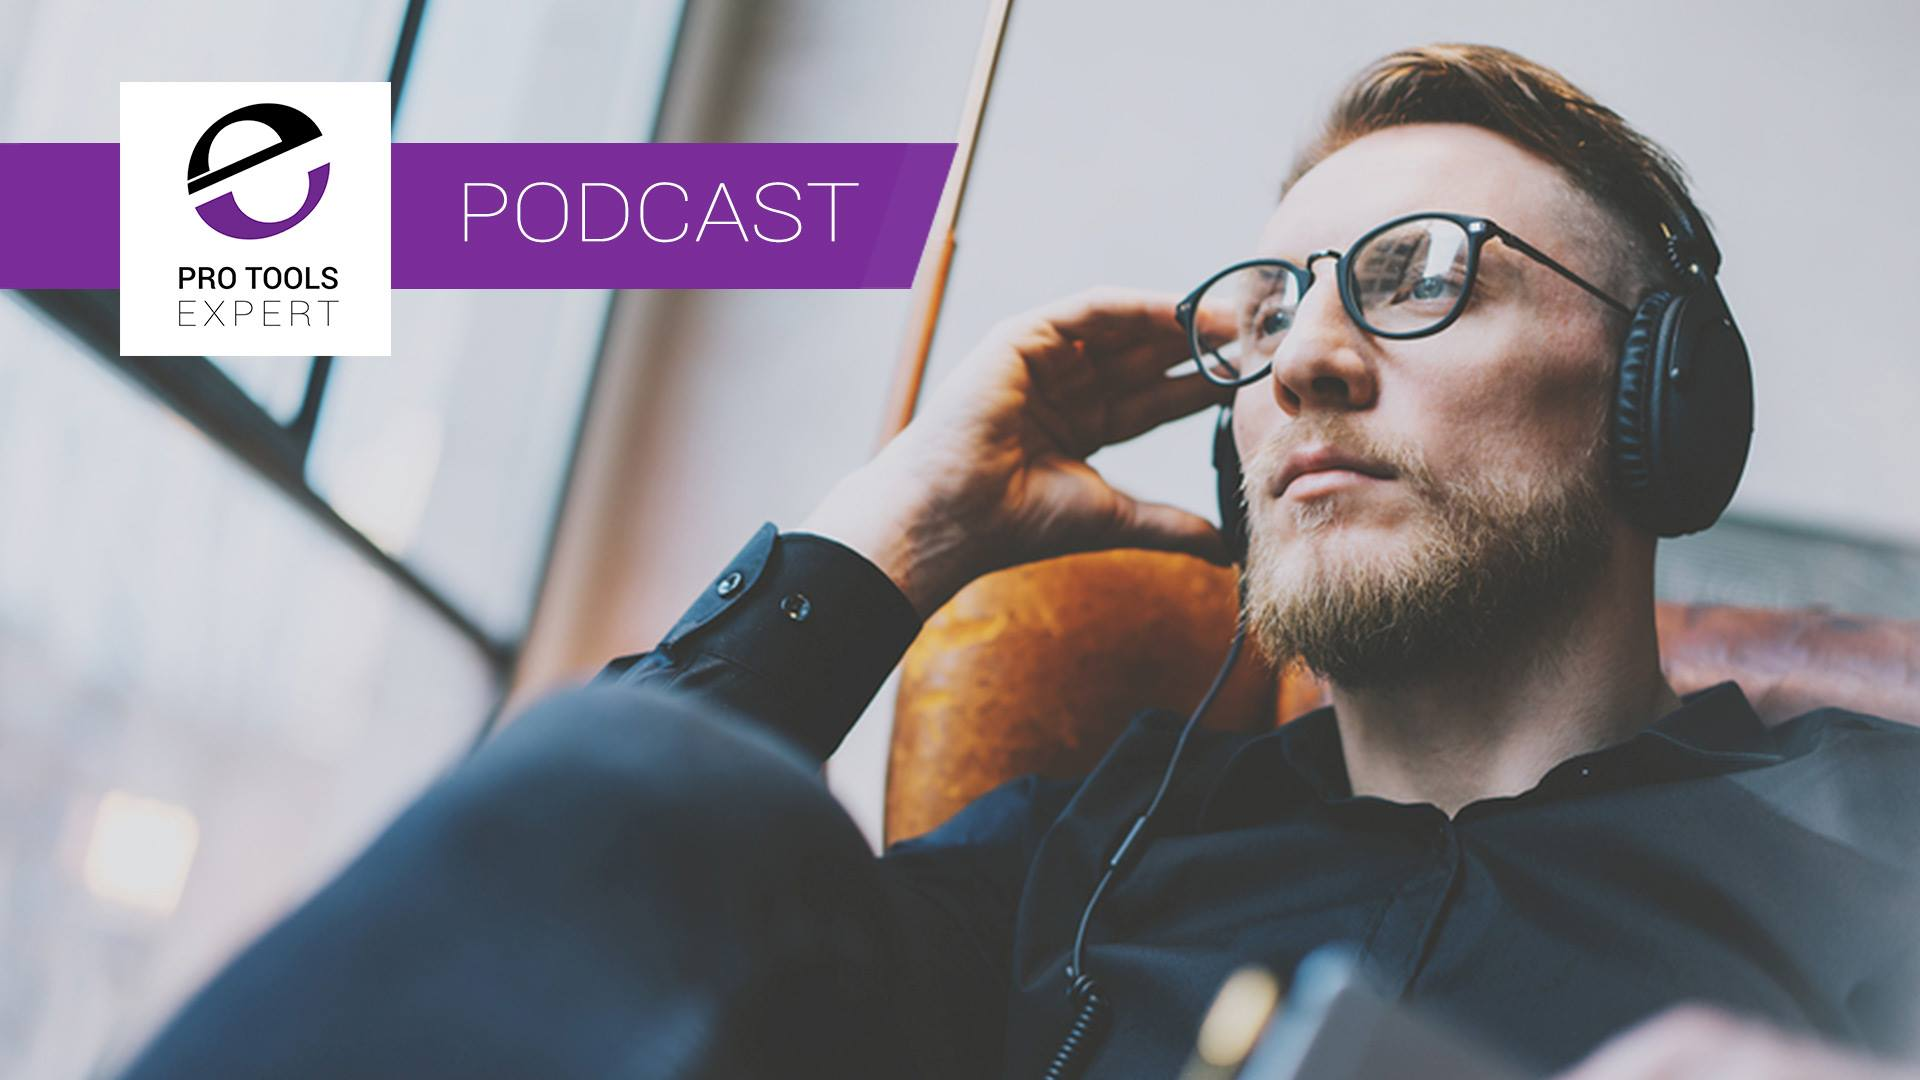 Pro Tools Expert Podcast Episode 275